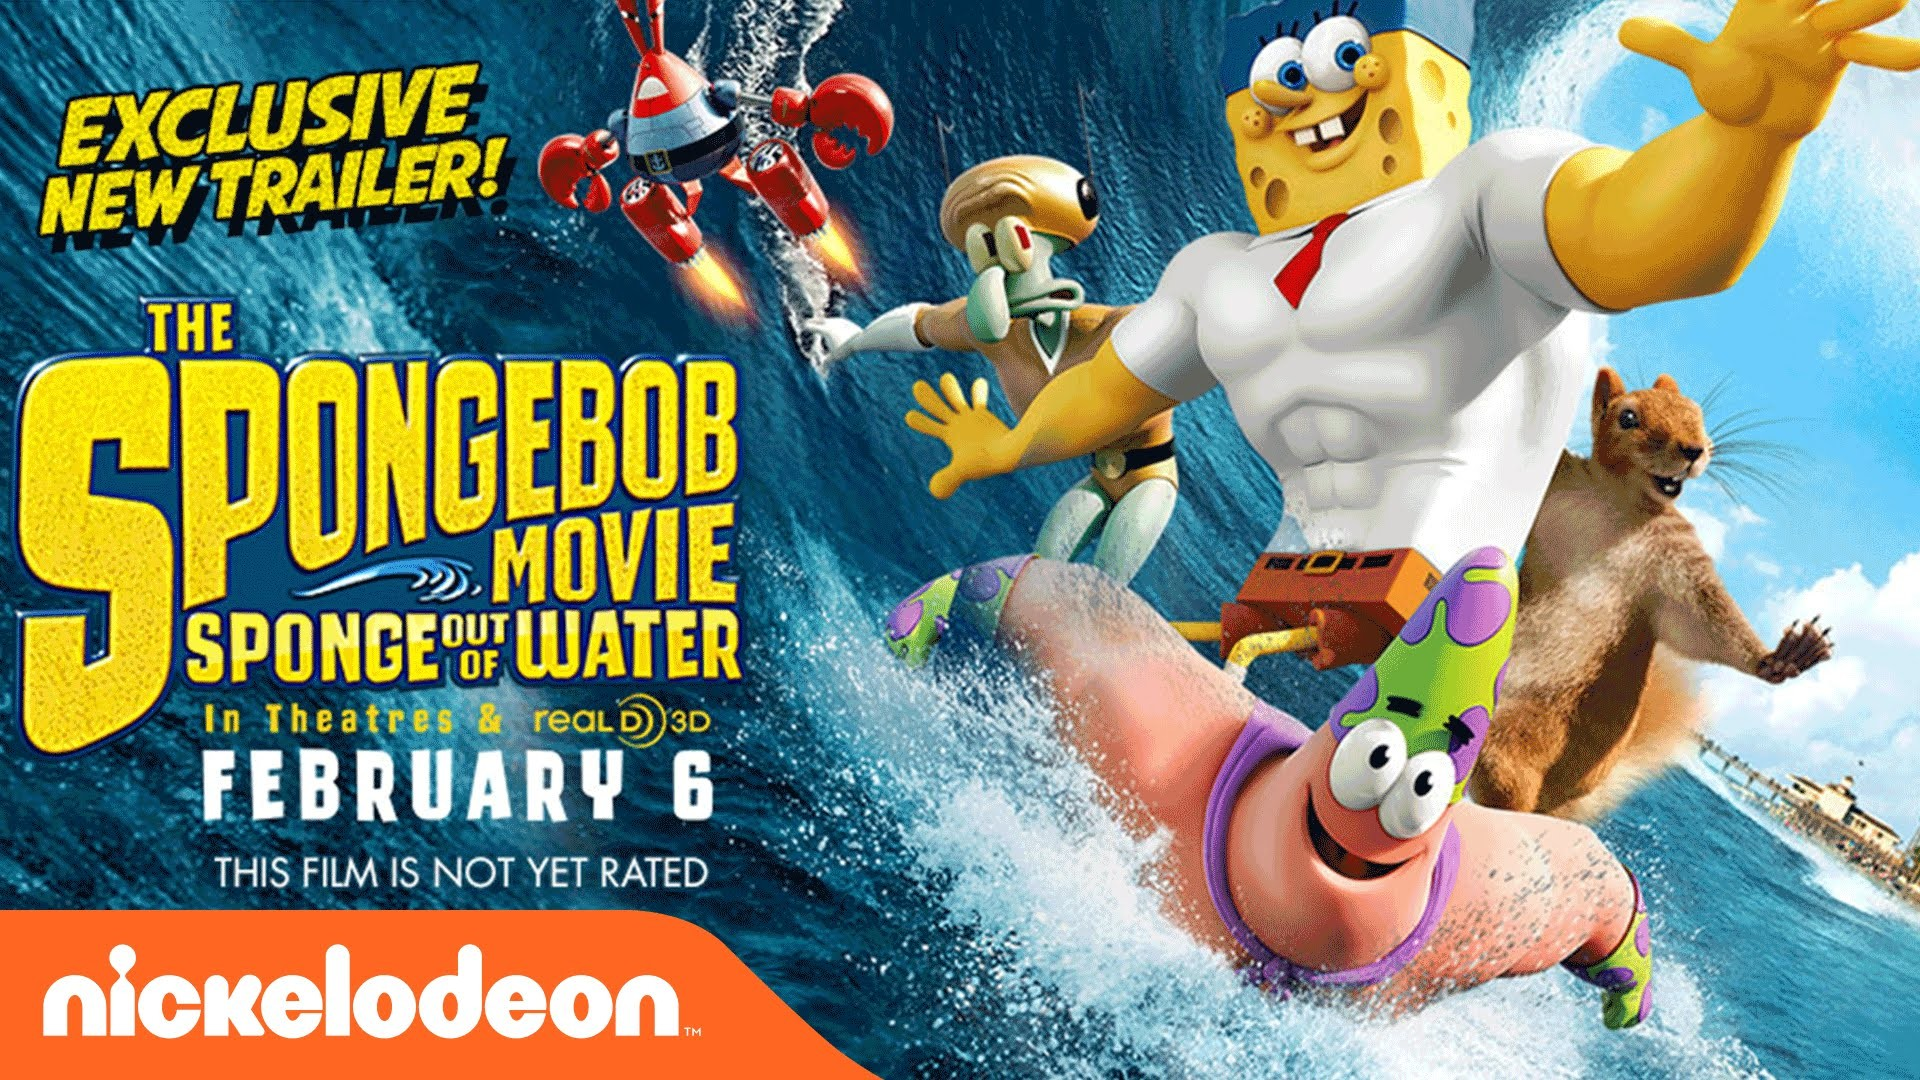 the spongebob movie sponge out of water wallpaper images background w zn